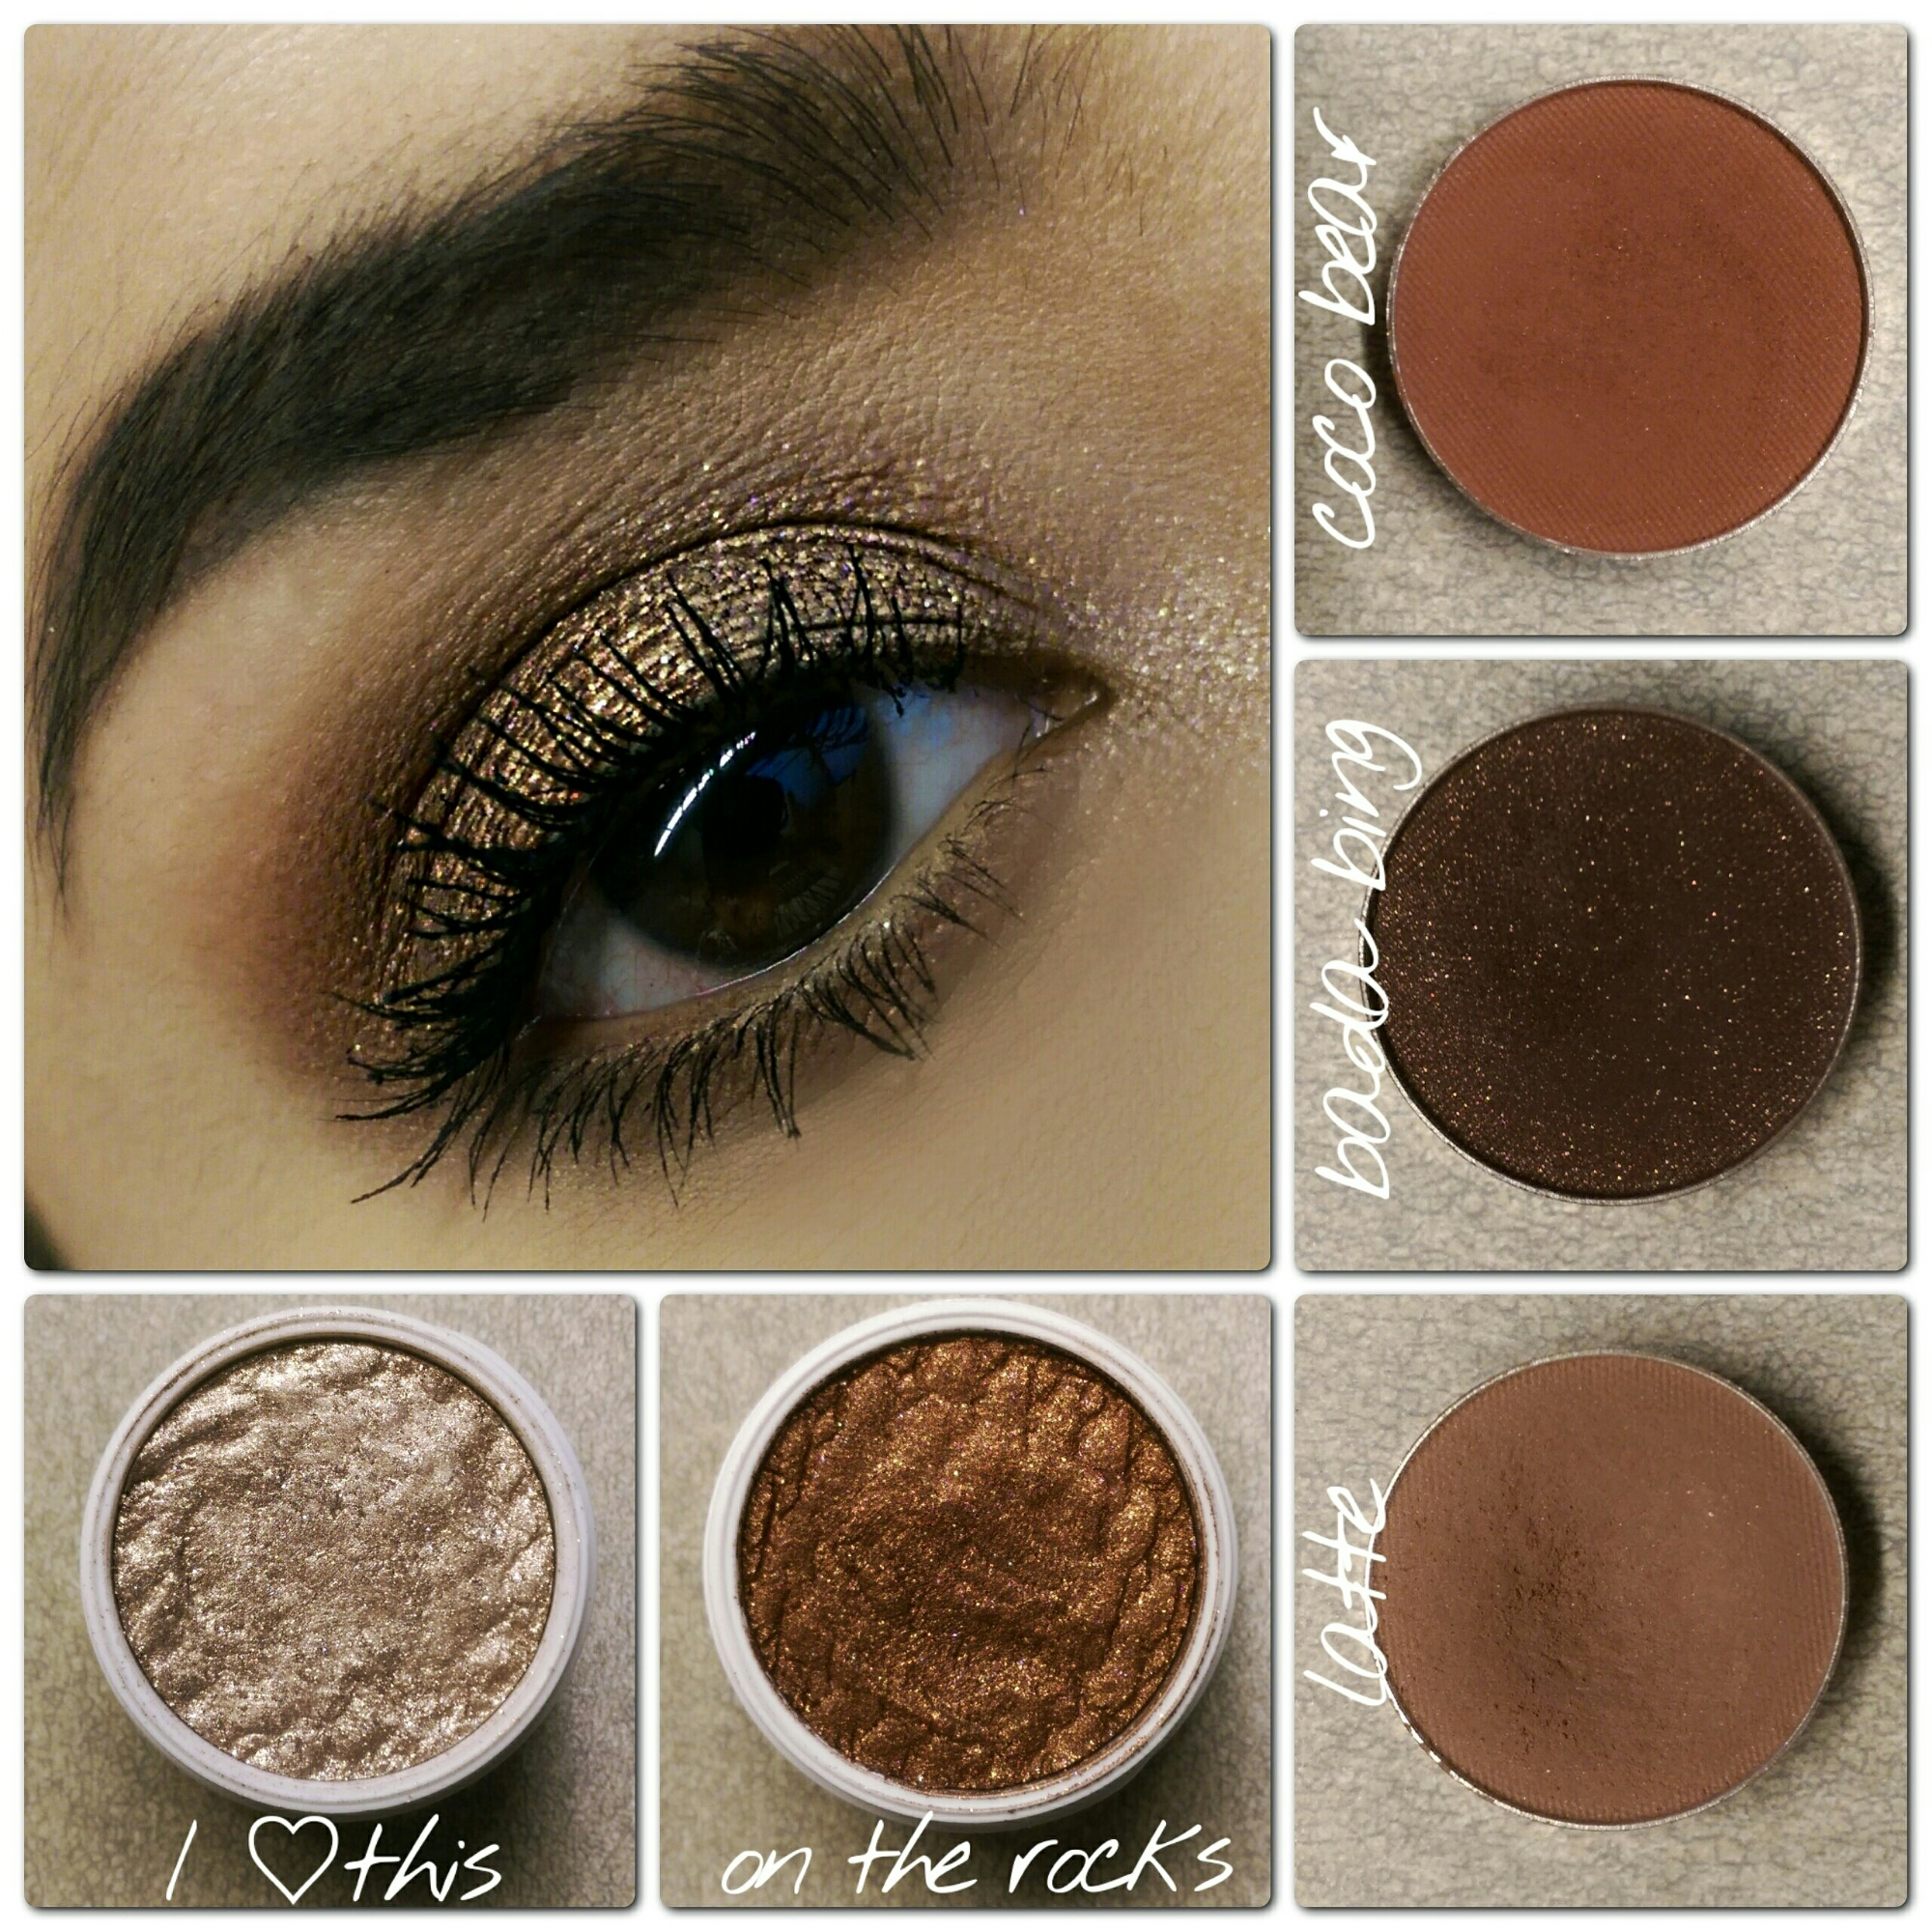 MakeupGeek Cosmetics ColourPop Cosmetics cruelty free makeup warm brown smokey eyes MOTD